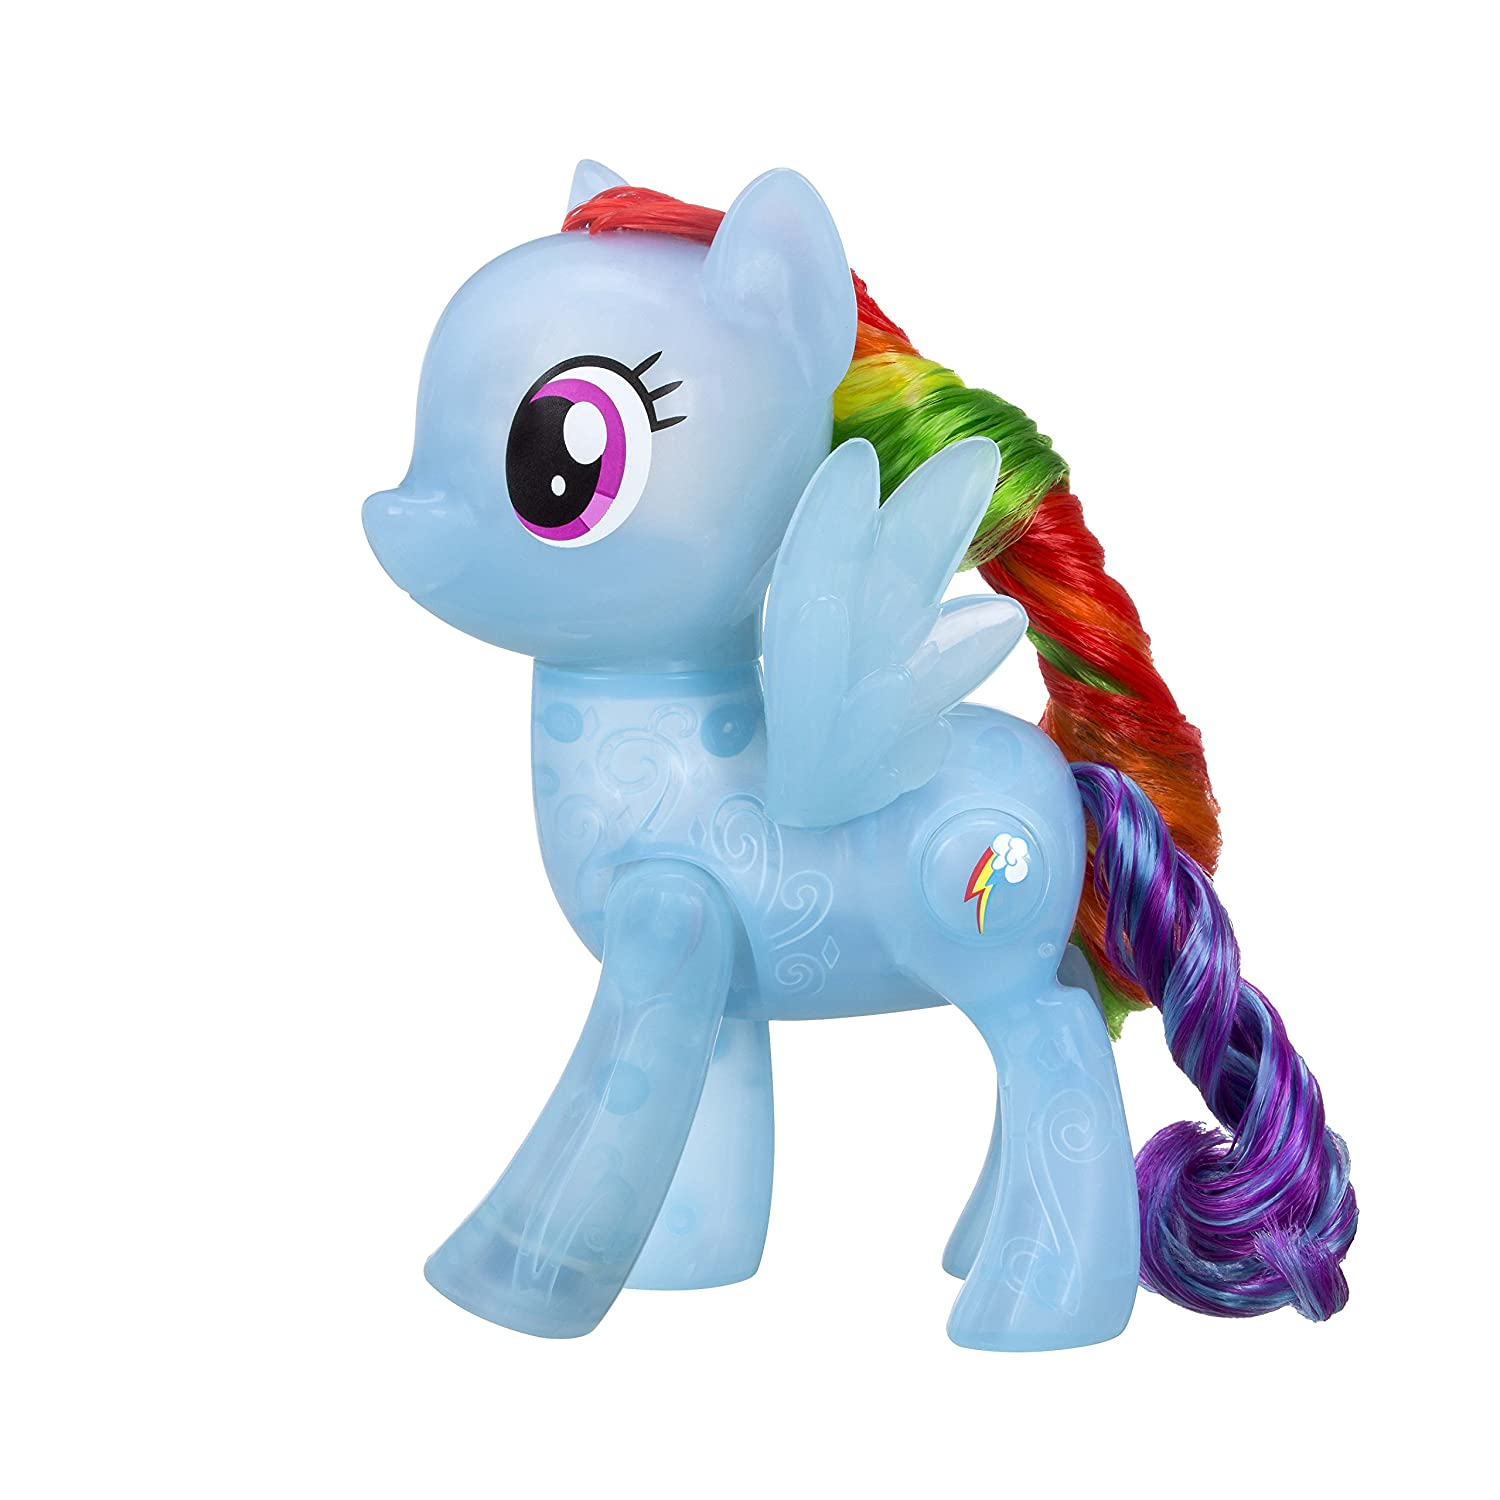 fe0c303834e937 Amazon.com  My Little Pony Shining Friends Rainbow Dash Figure  Toys   Games